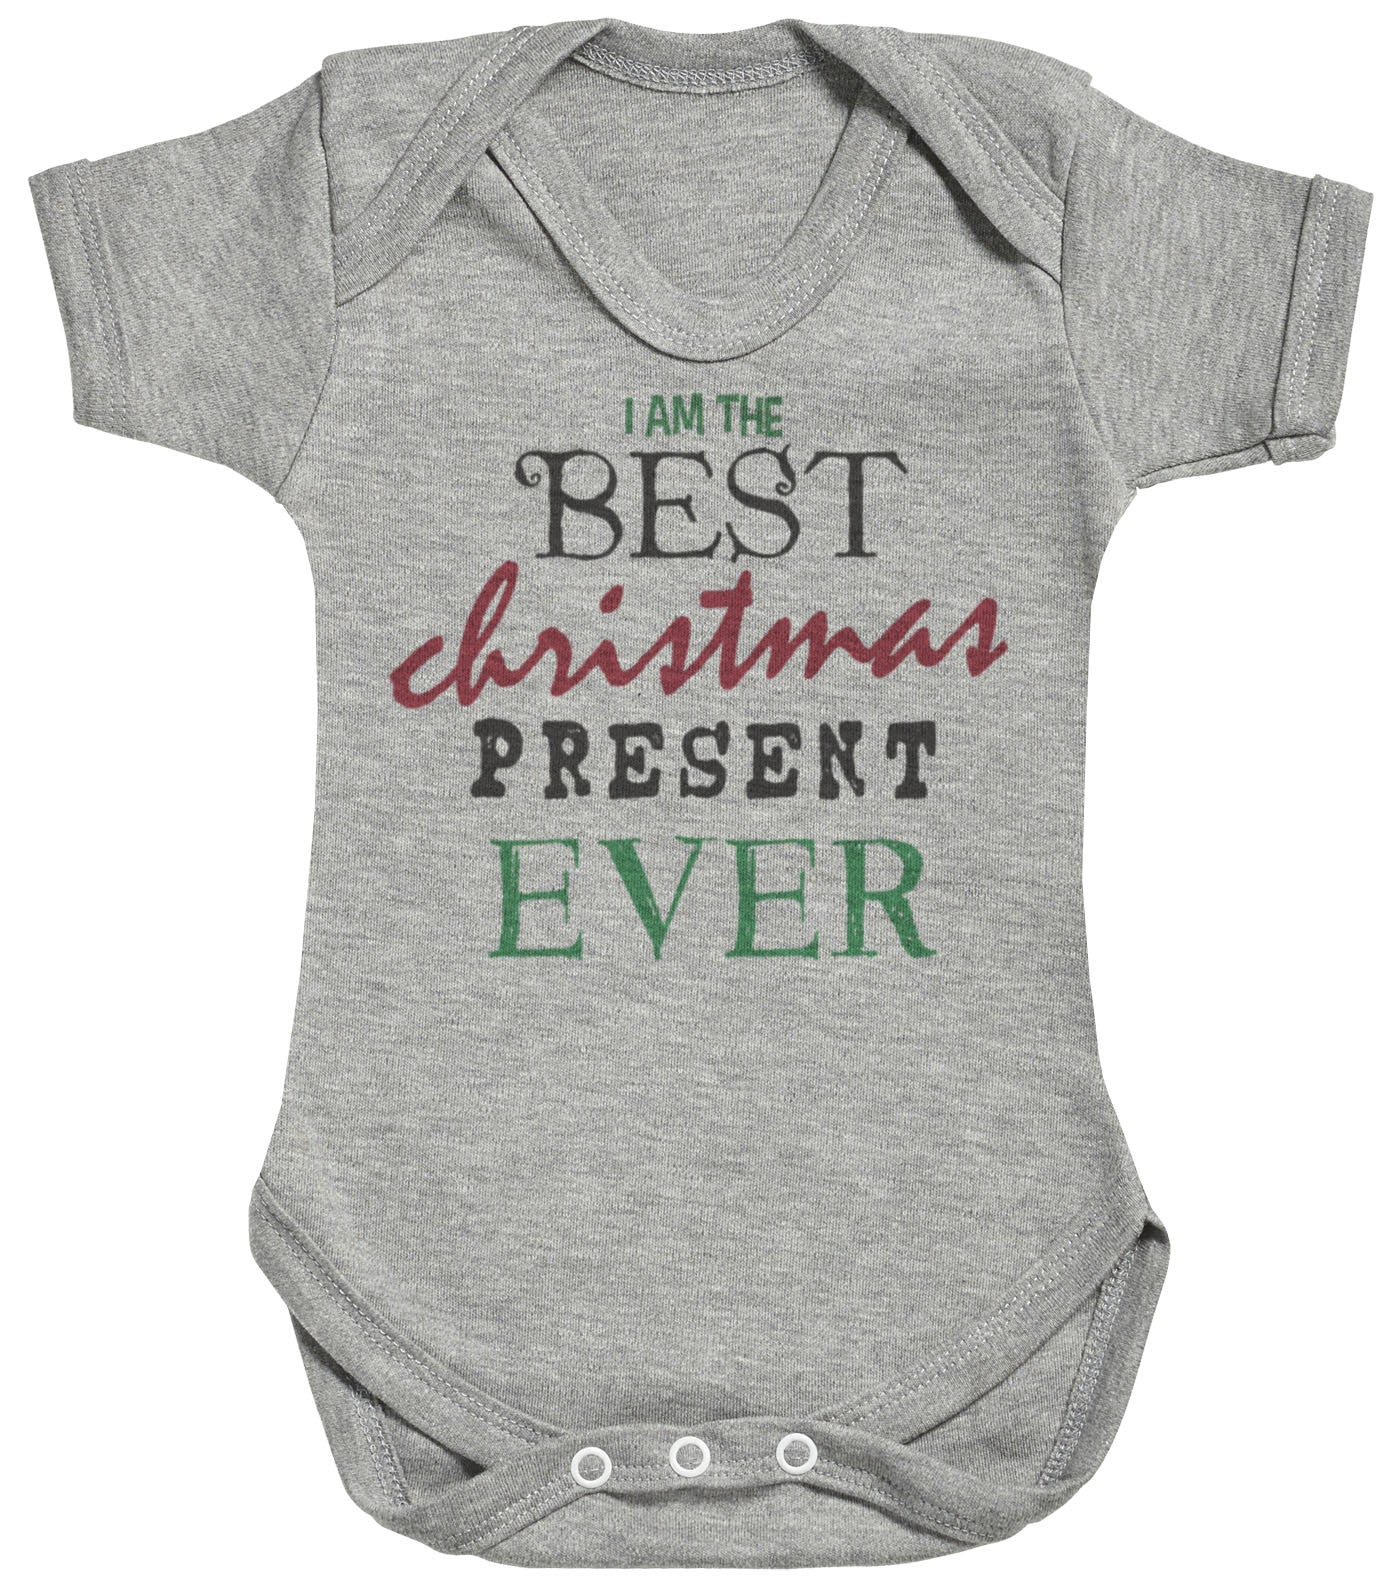 59020efee I Am The Best Christmas Present Ever Baby Bodysuit / Babygrow ...